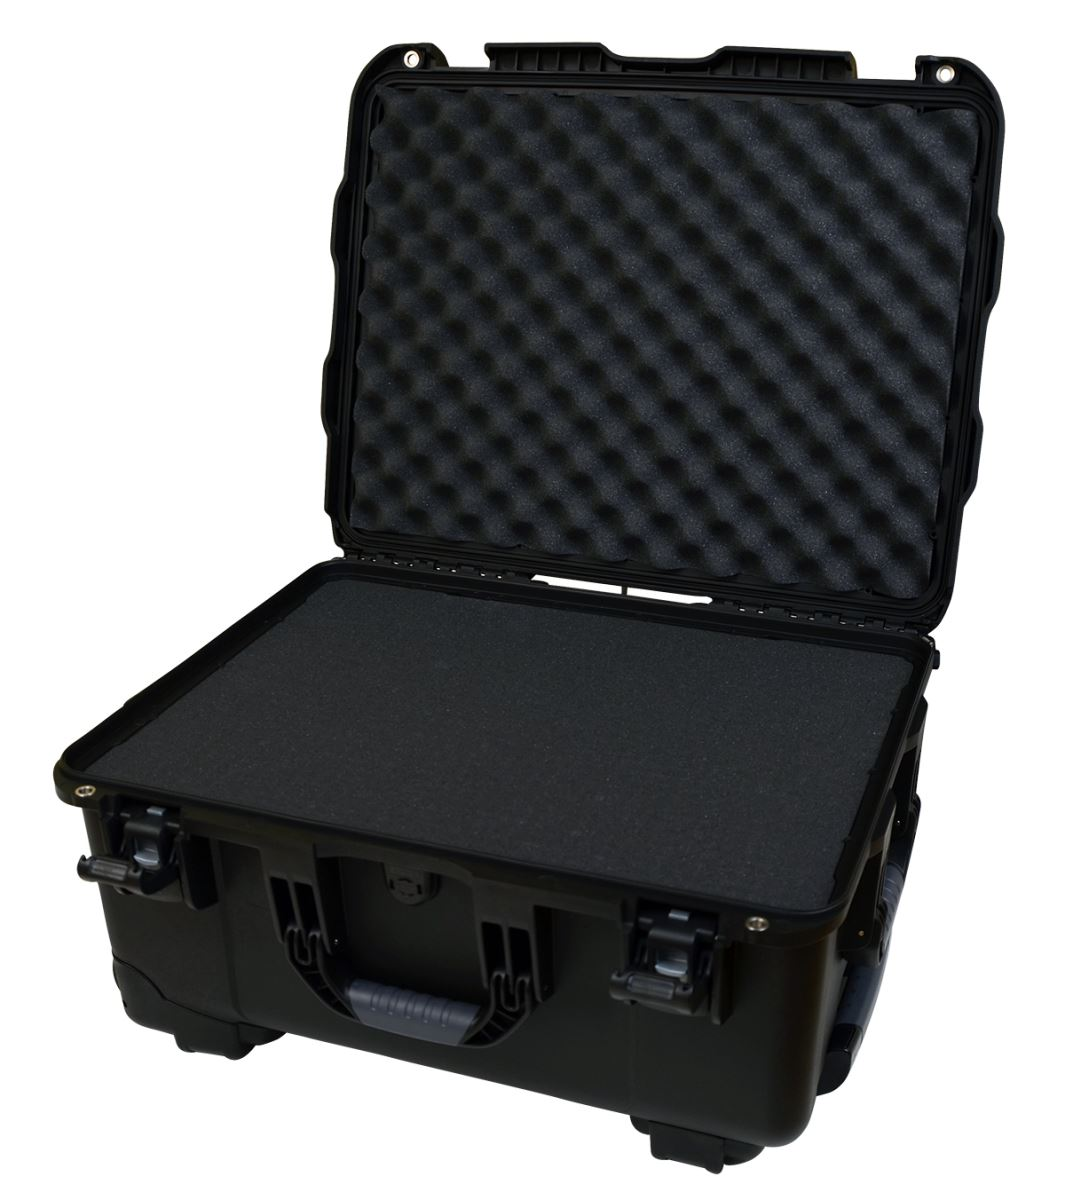 Gator GU-2015-10-WPDF Waterproof Case w/ Diced Foam, 20.5 x 15.3 x 10.1in.